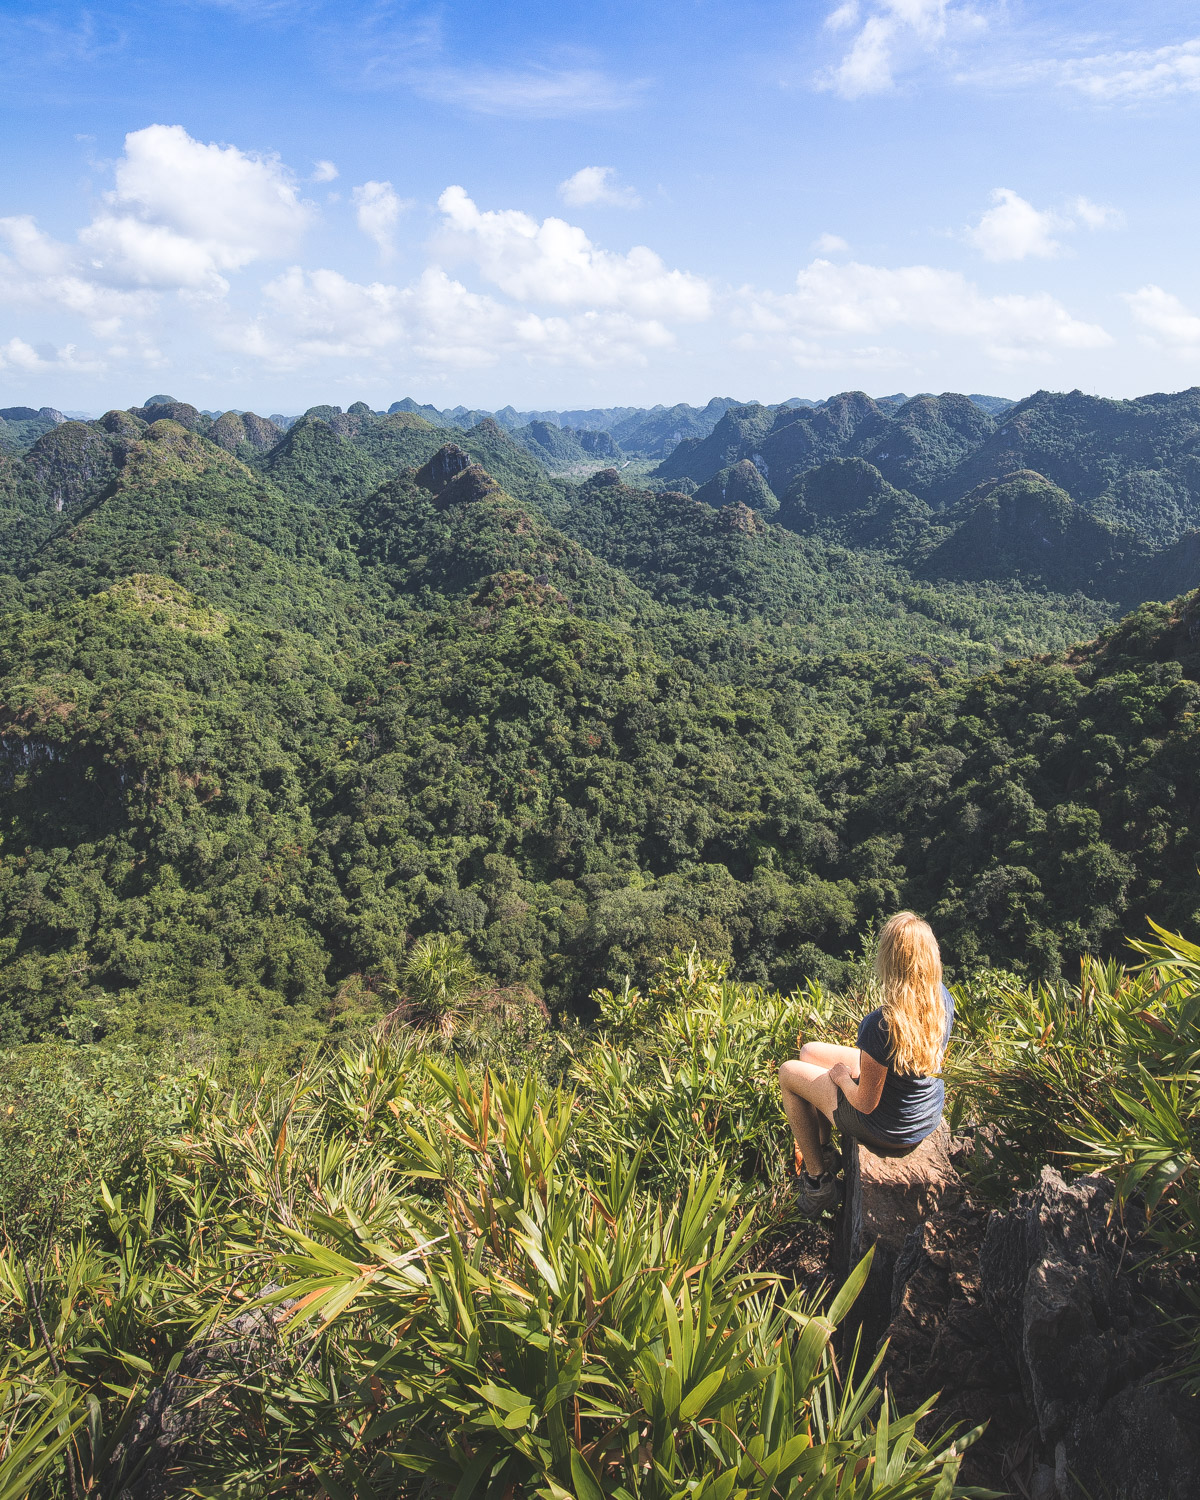 Instagrammable places in Vietnam - Cat Ba National Park